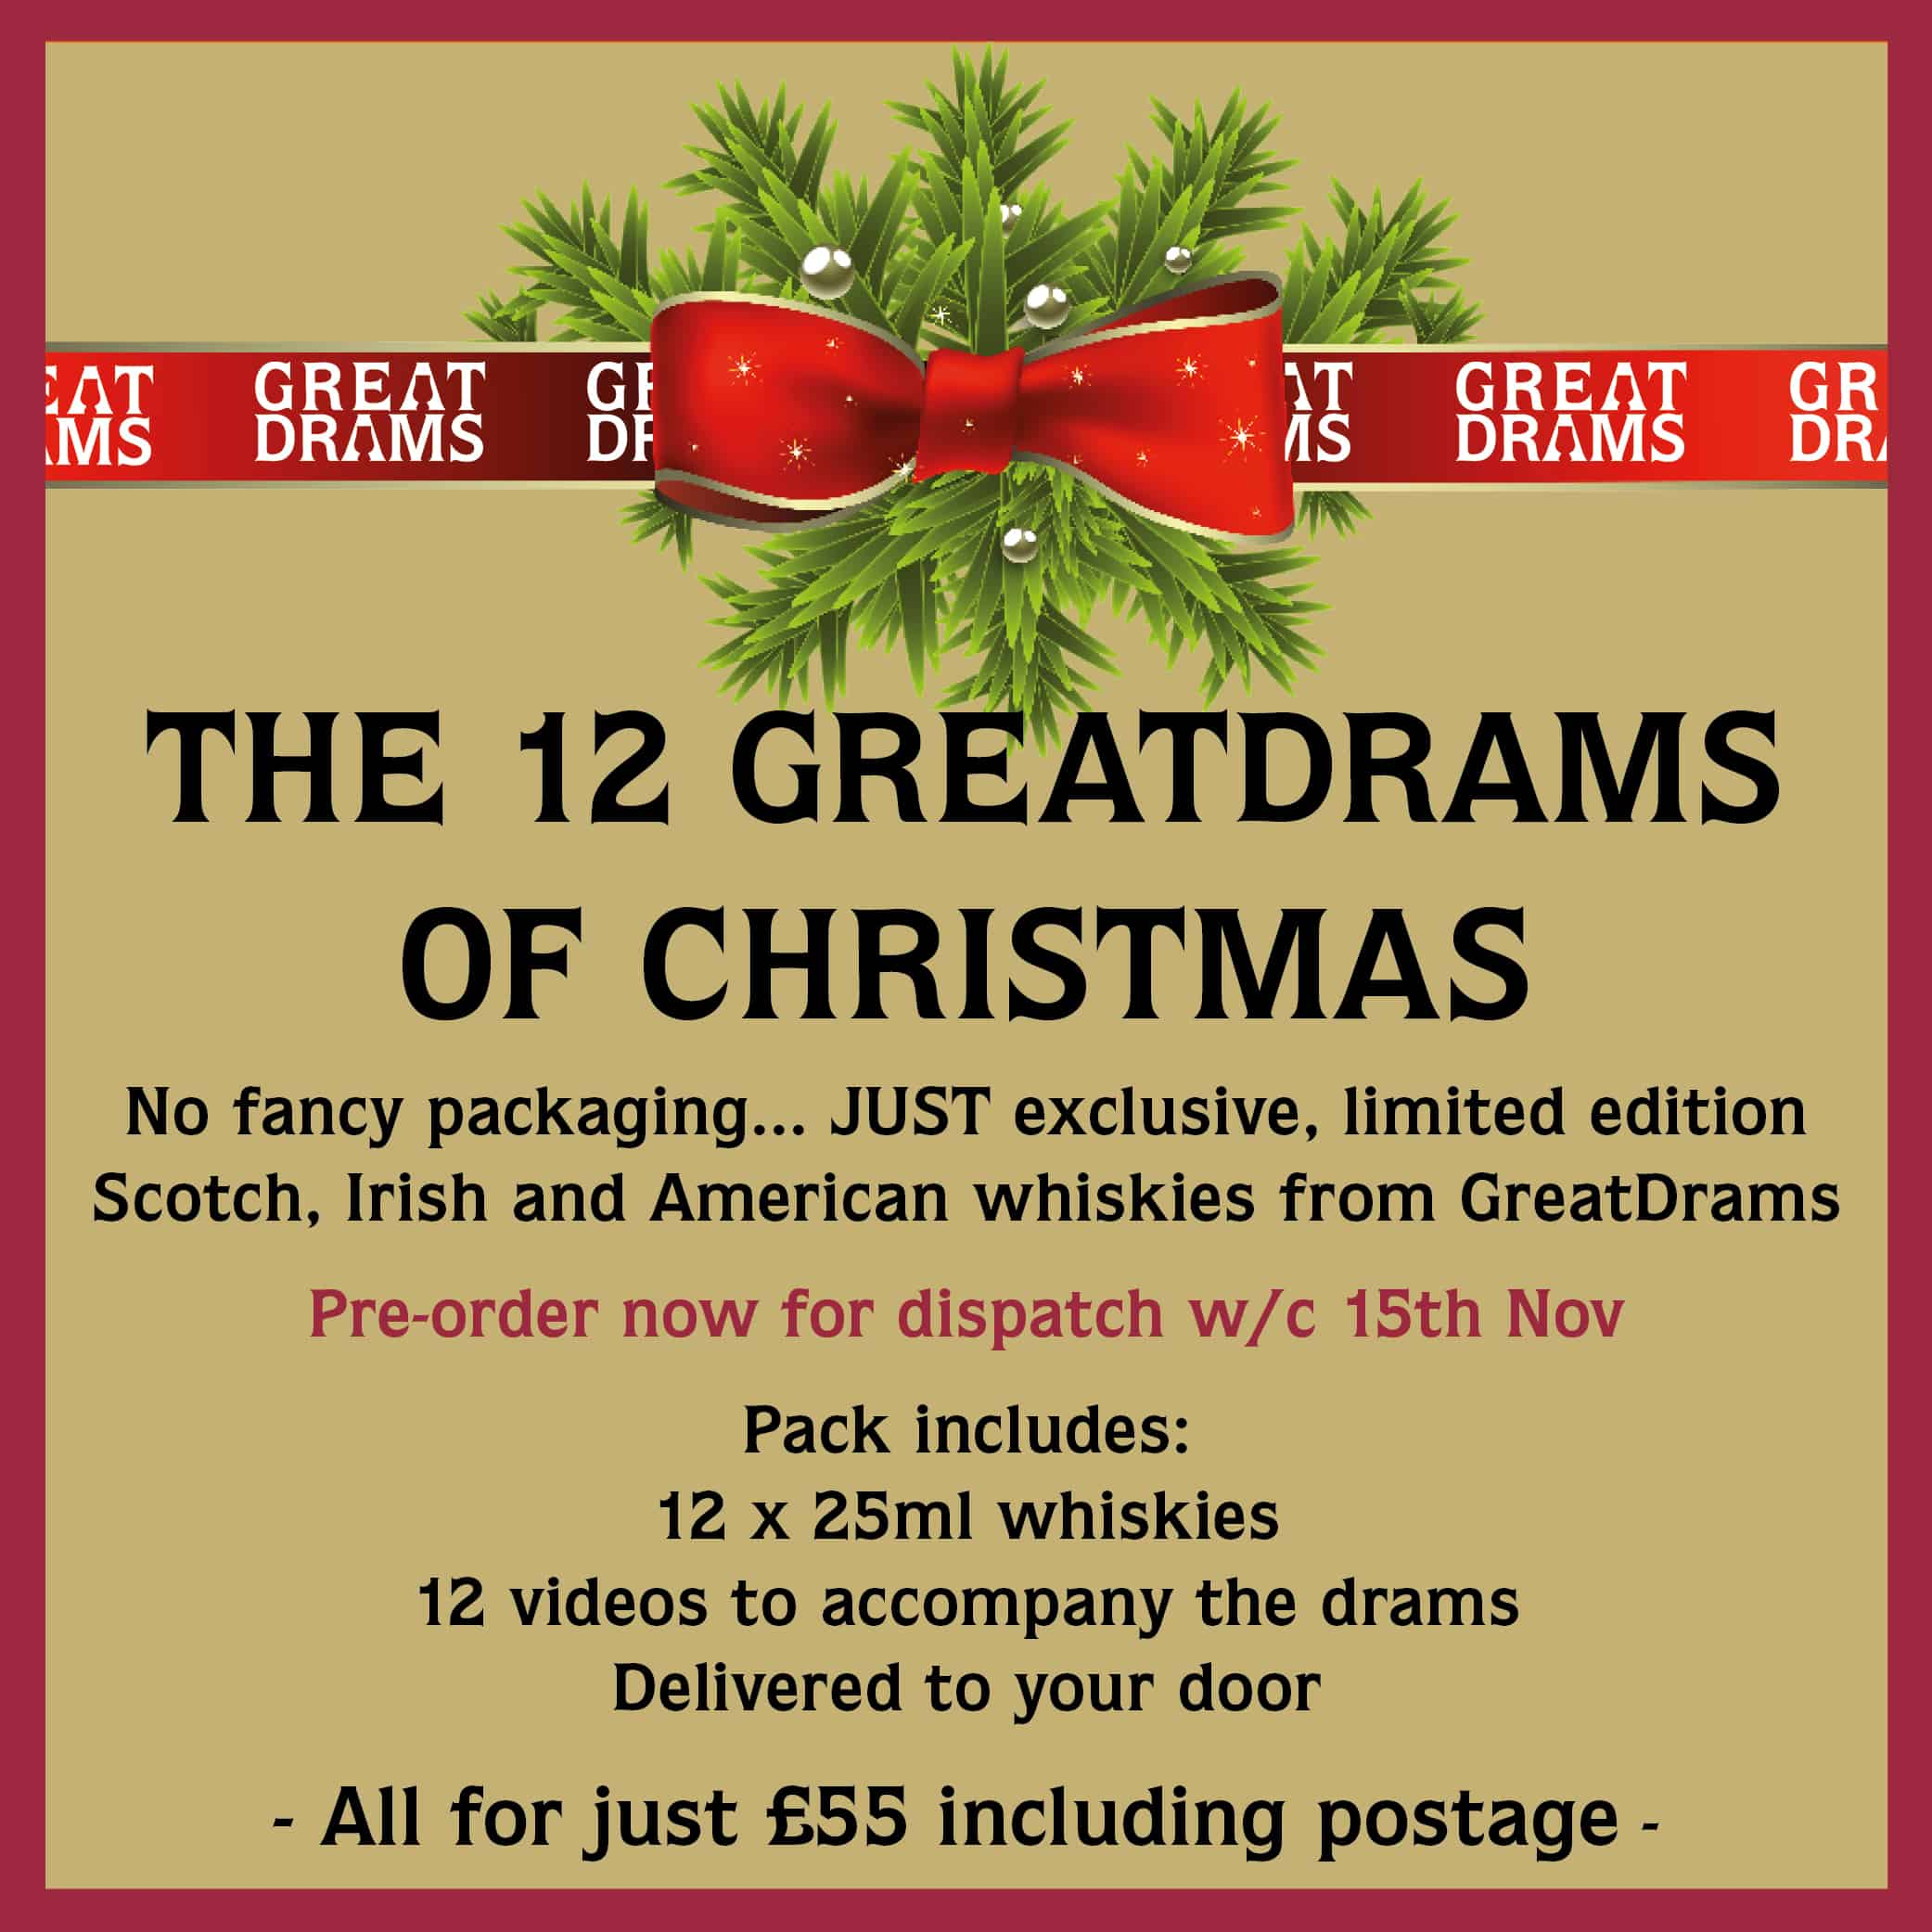 The 12 GreatDrams of Christmas Gift Pack